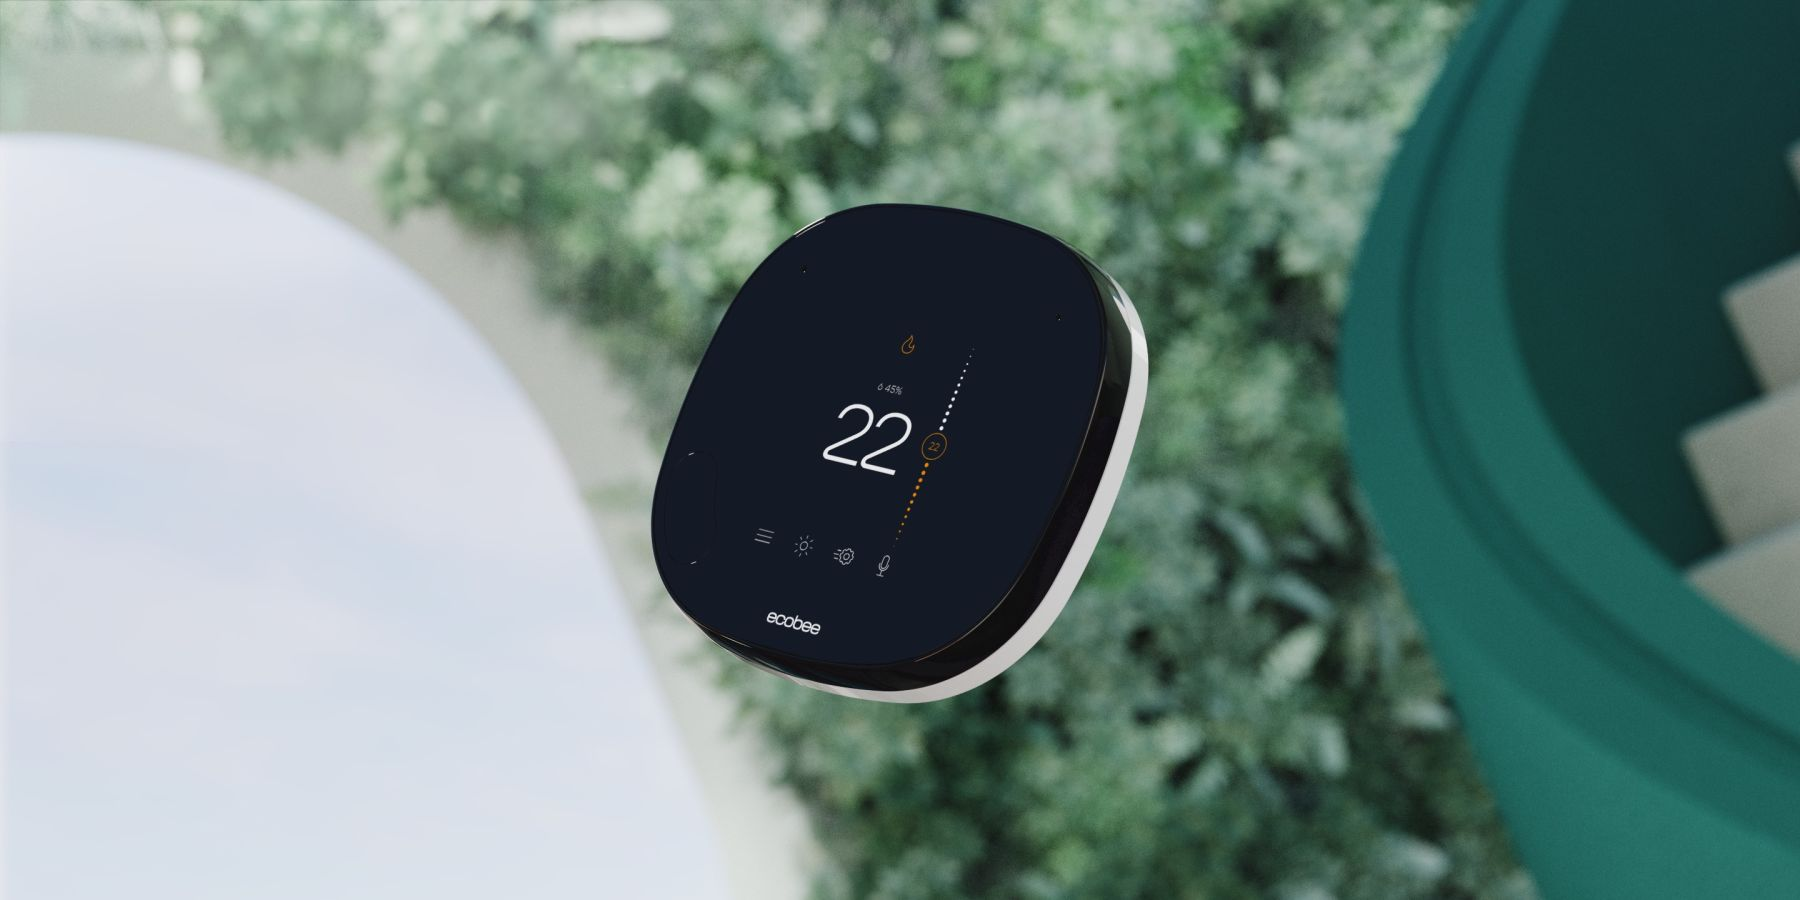 Smart thermostat background comfort